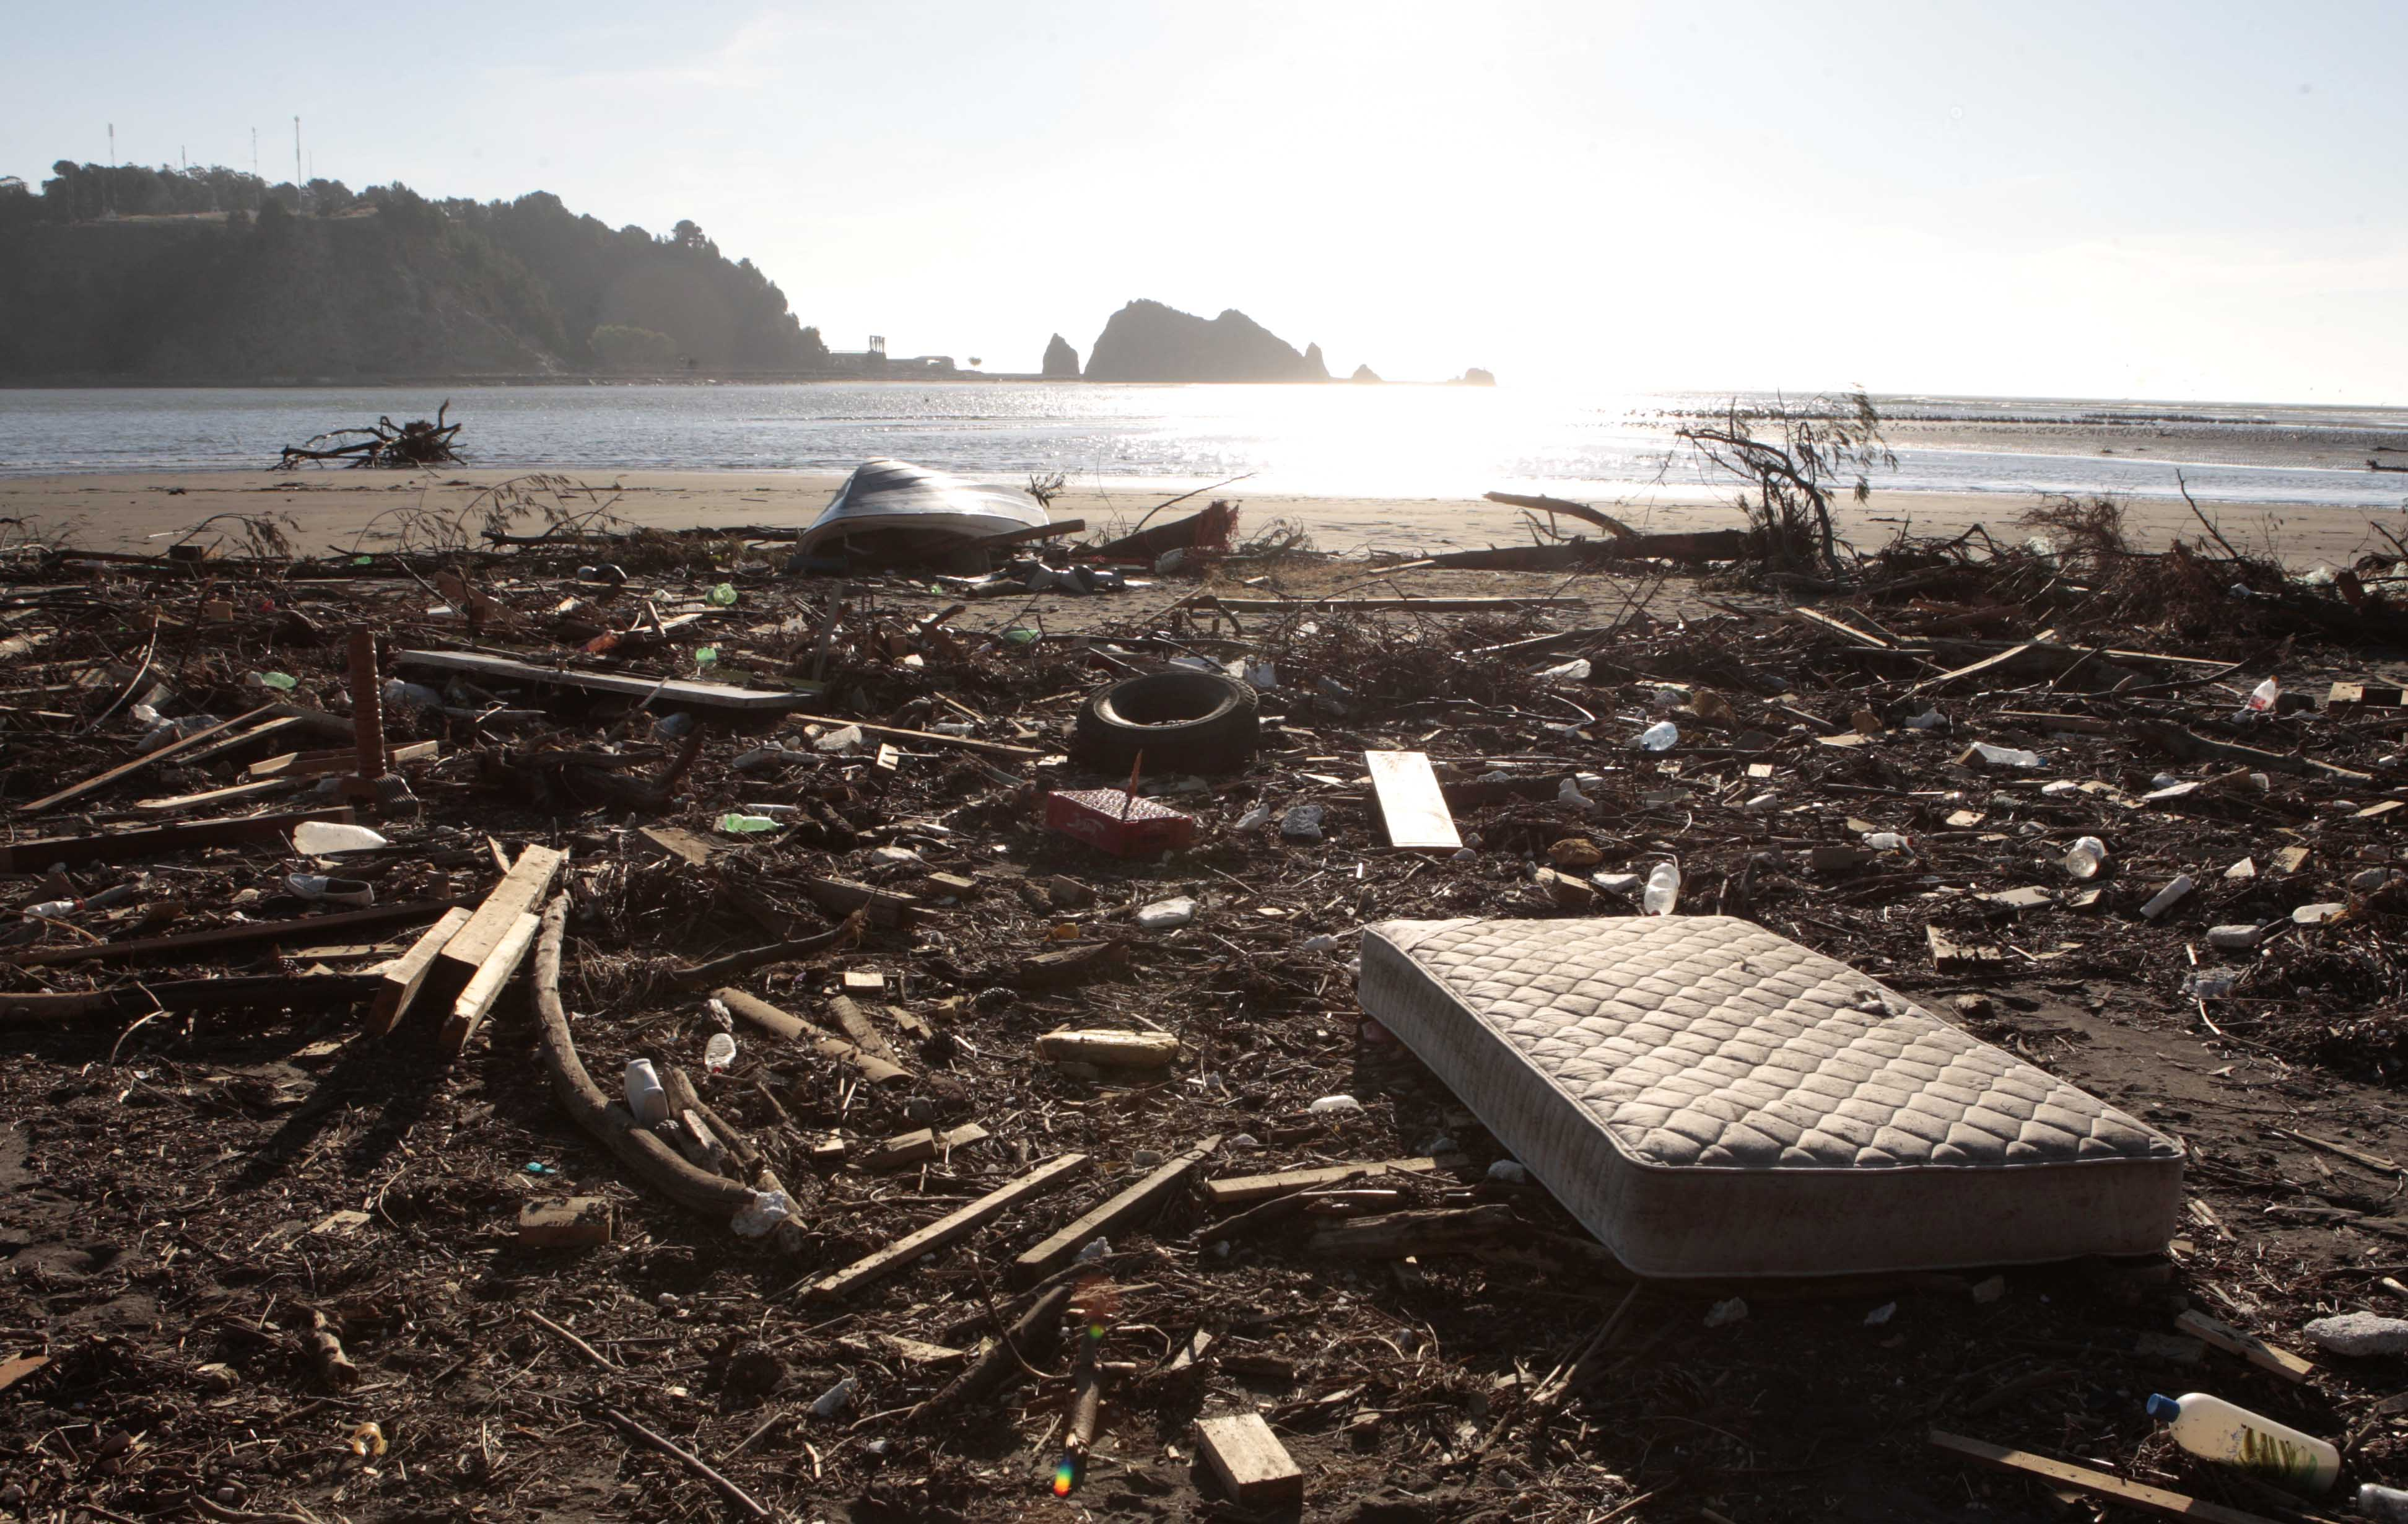 Earthquake debris sits on the shore of the Maule river in Constitucion, Chile, Friday, March 5 , 2010. An 8.8-magnitude earthquake struck central Chile on Feb. 27, causing widespread damage. (AP Photo/Luis Hidalgo)